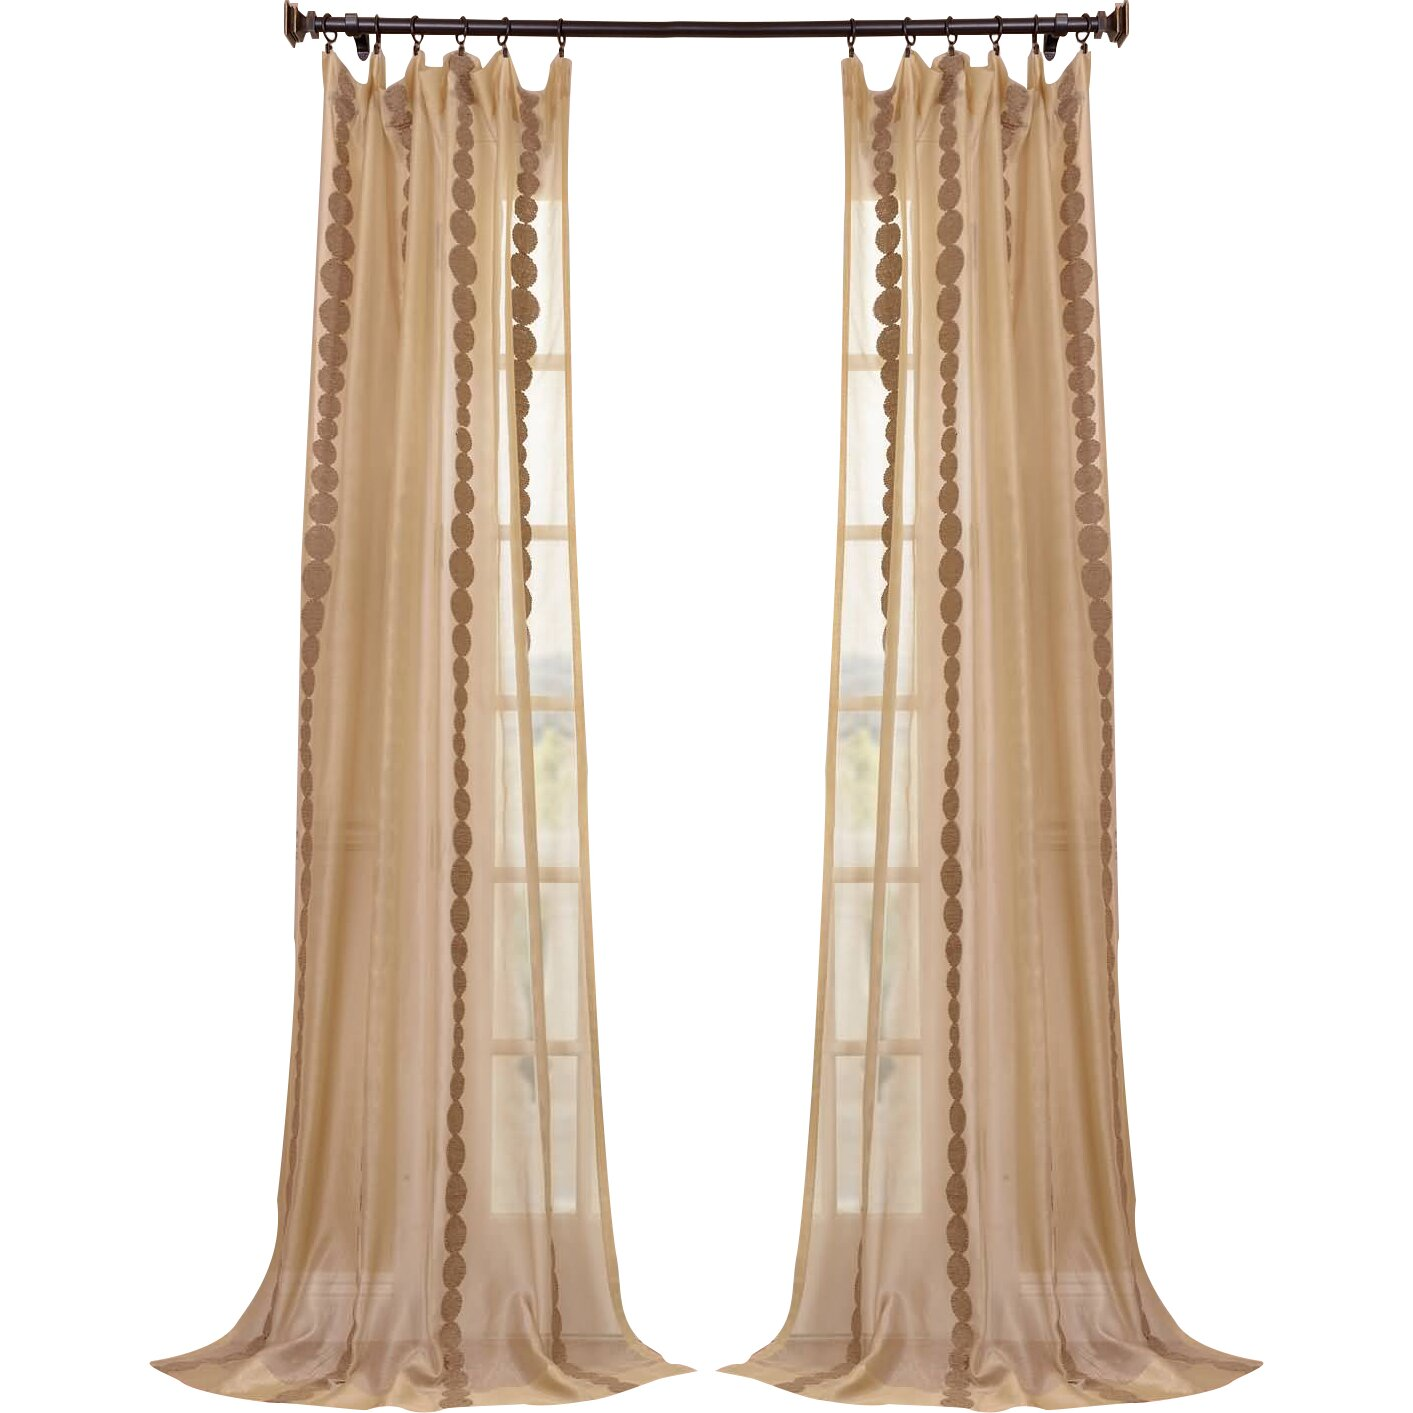 Half Price Drapes Cleopatra Embroidered Sheer Single Curtain Panel Reviews